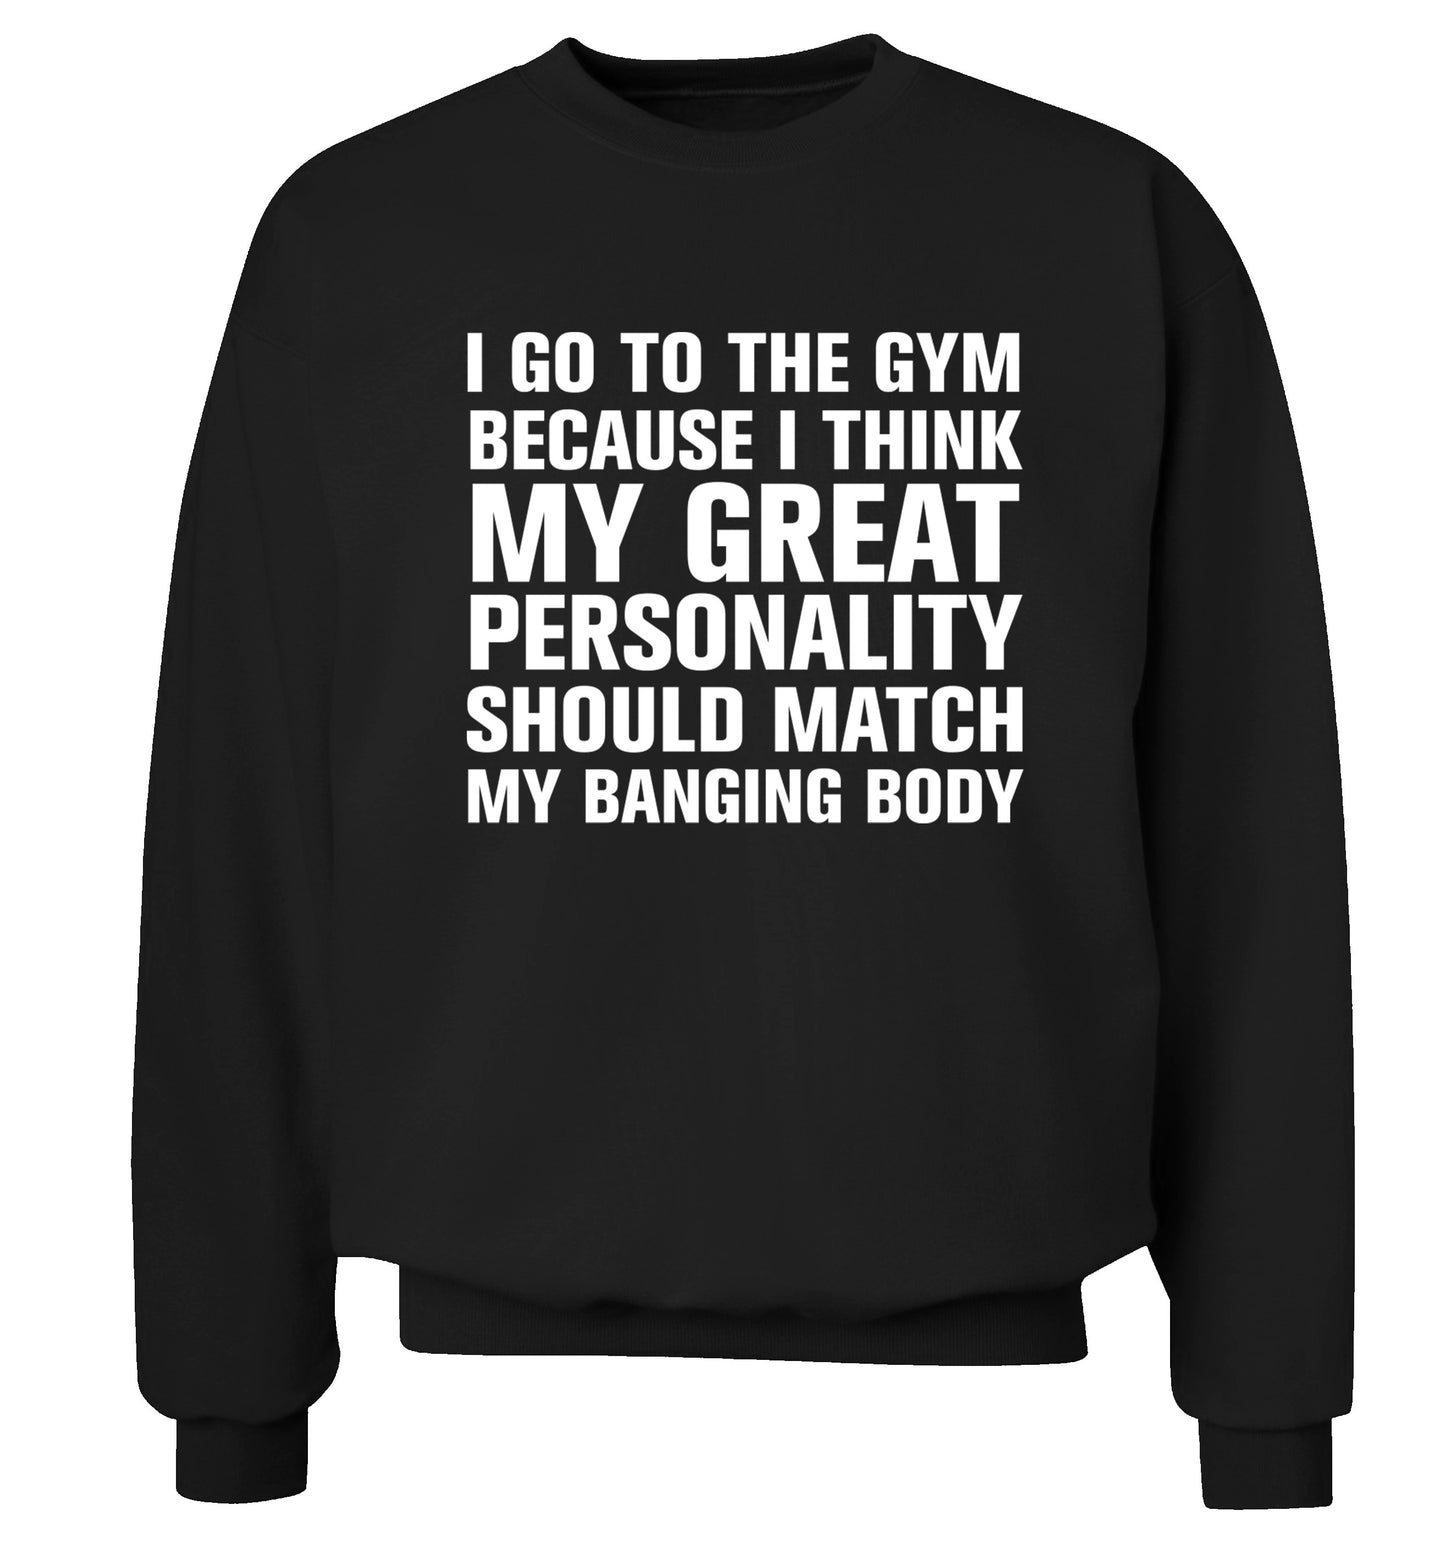 I go to the gym because I think my great personality should match my banging body Adult's unisex black Sweater 2XL